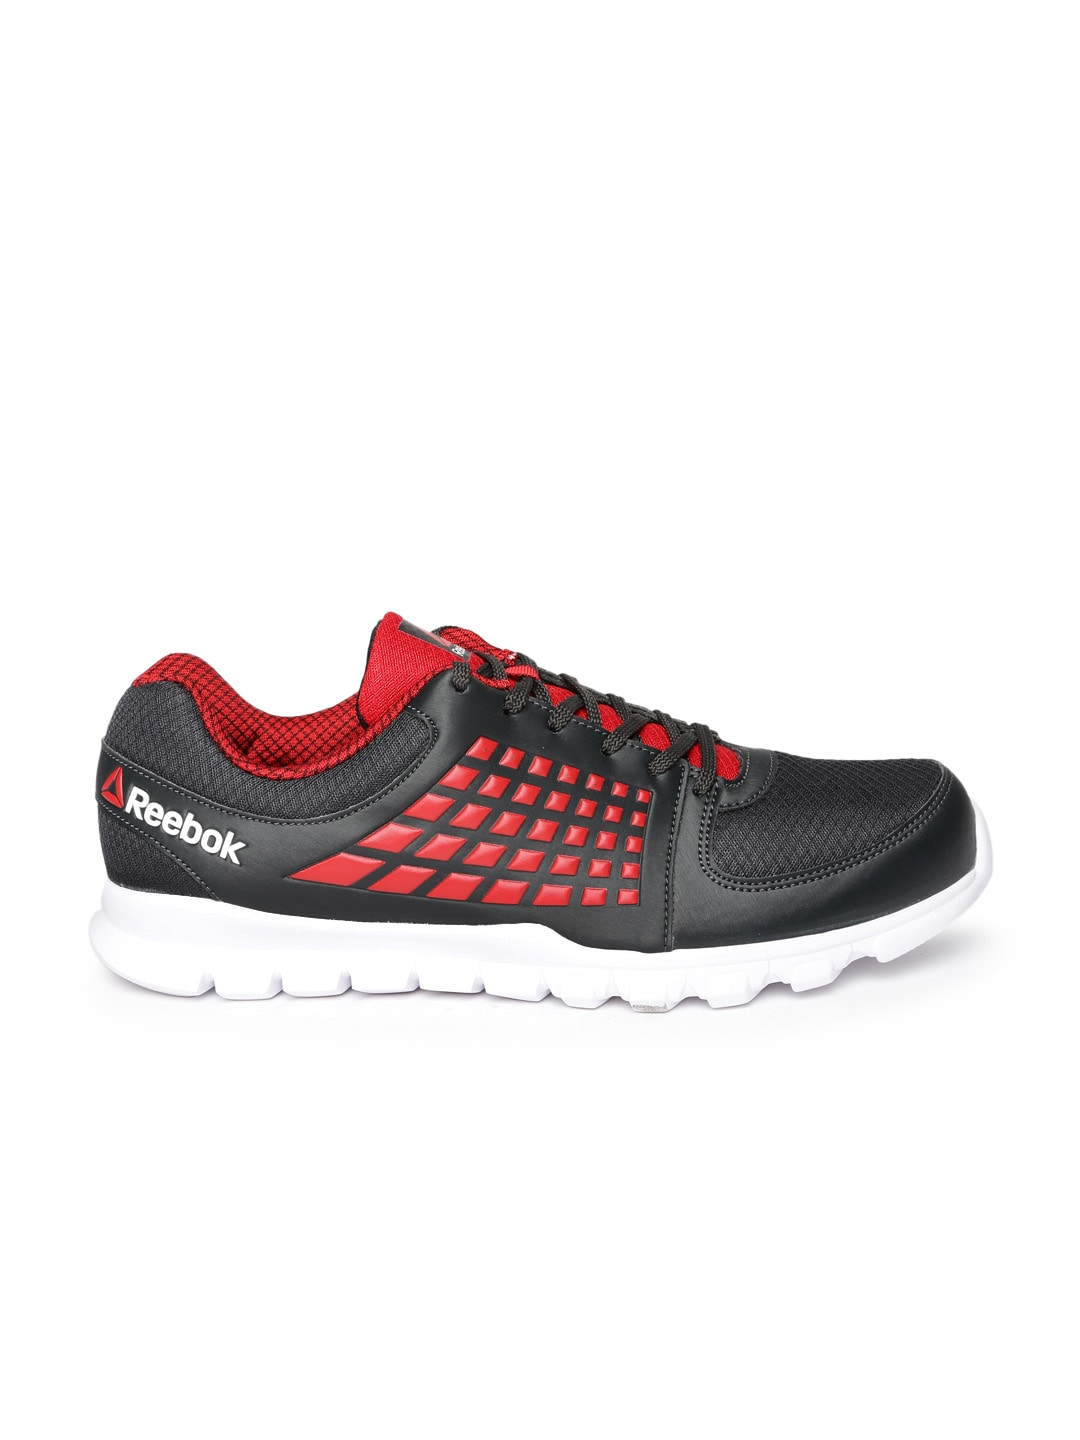 19fc0ba2becdcf Buy reebok shoes price and models   OFF32% Discounted